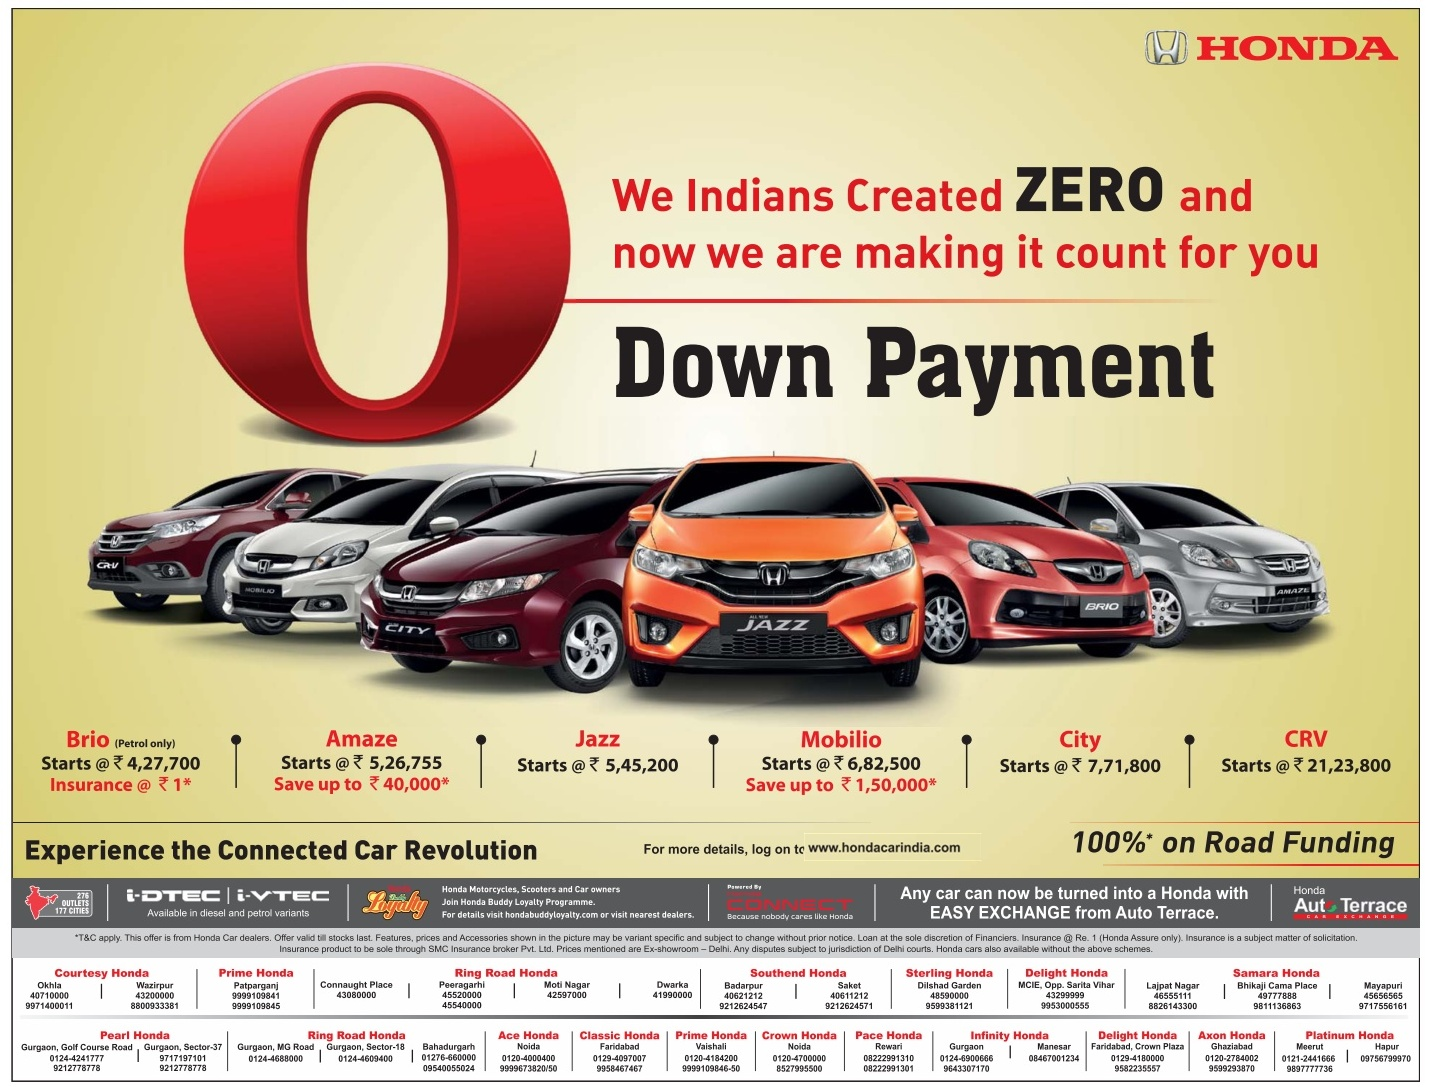 Zero (0) down payment on Honda Cars| 100% on road funding | March 2016 Honda car discount offer sale